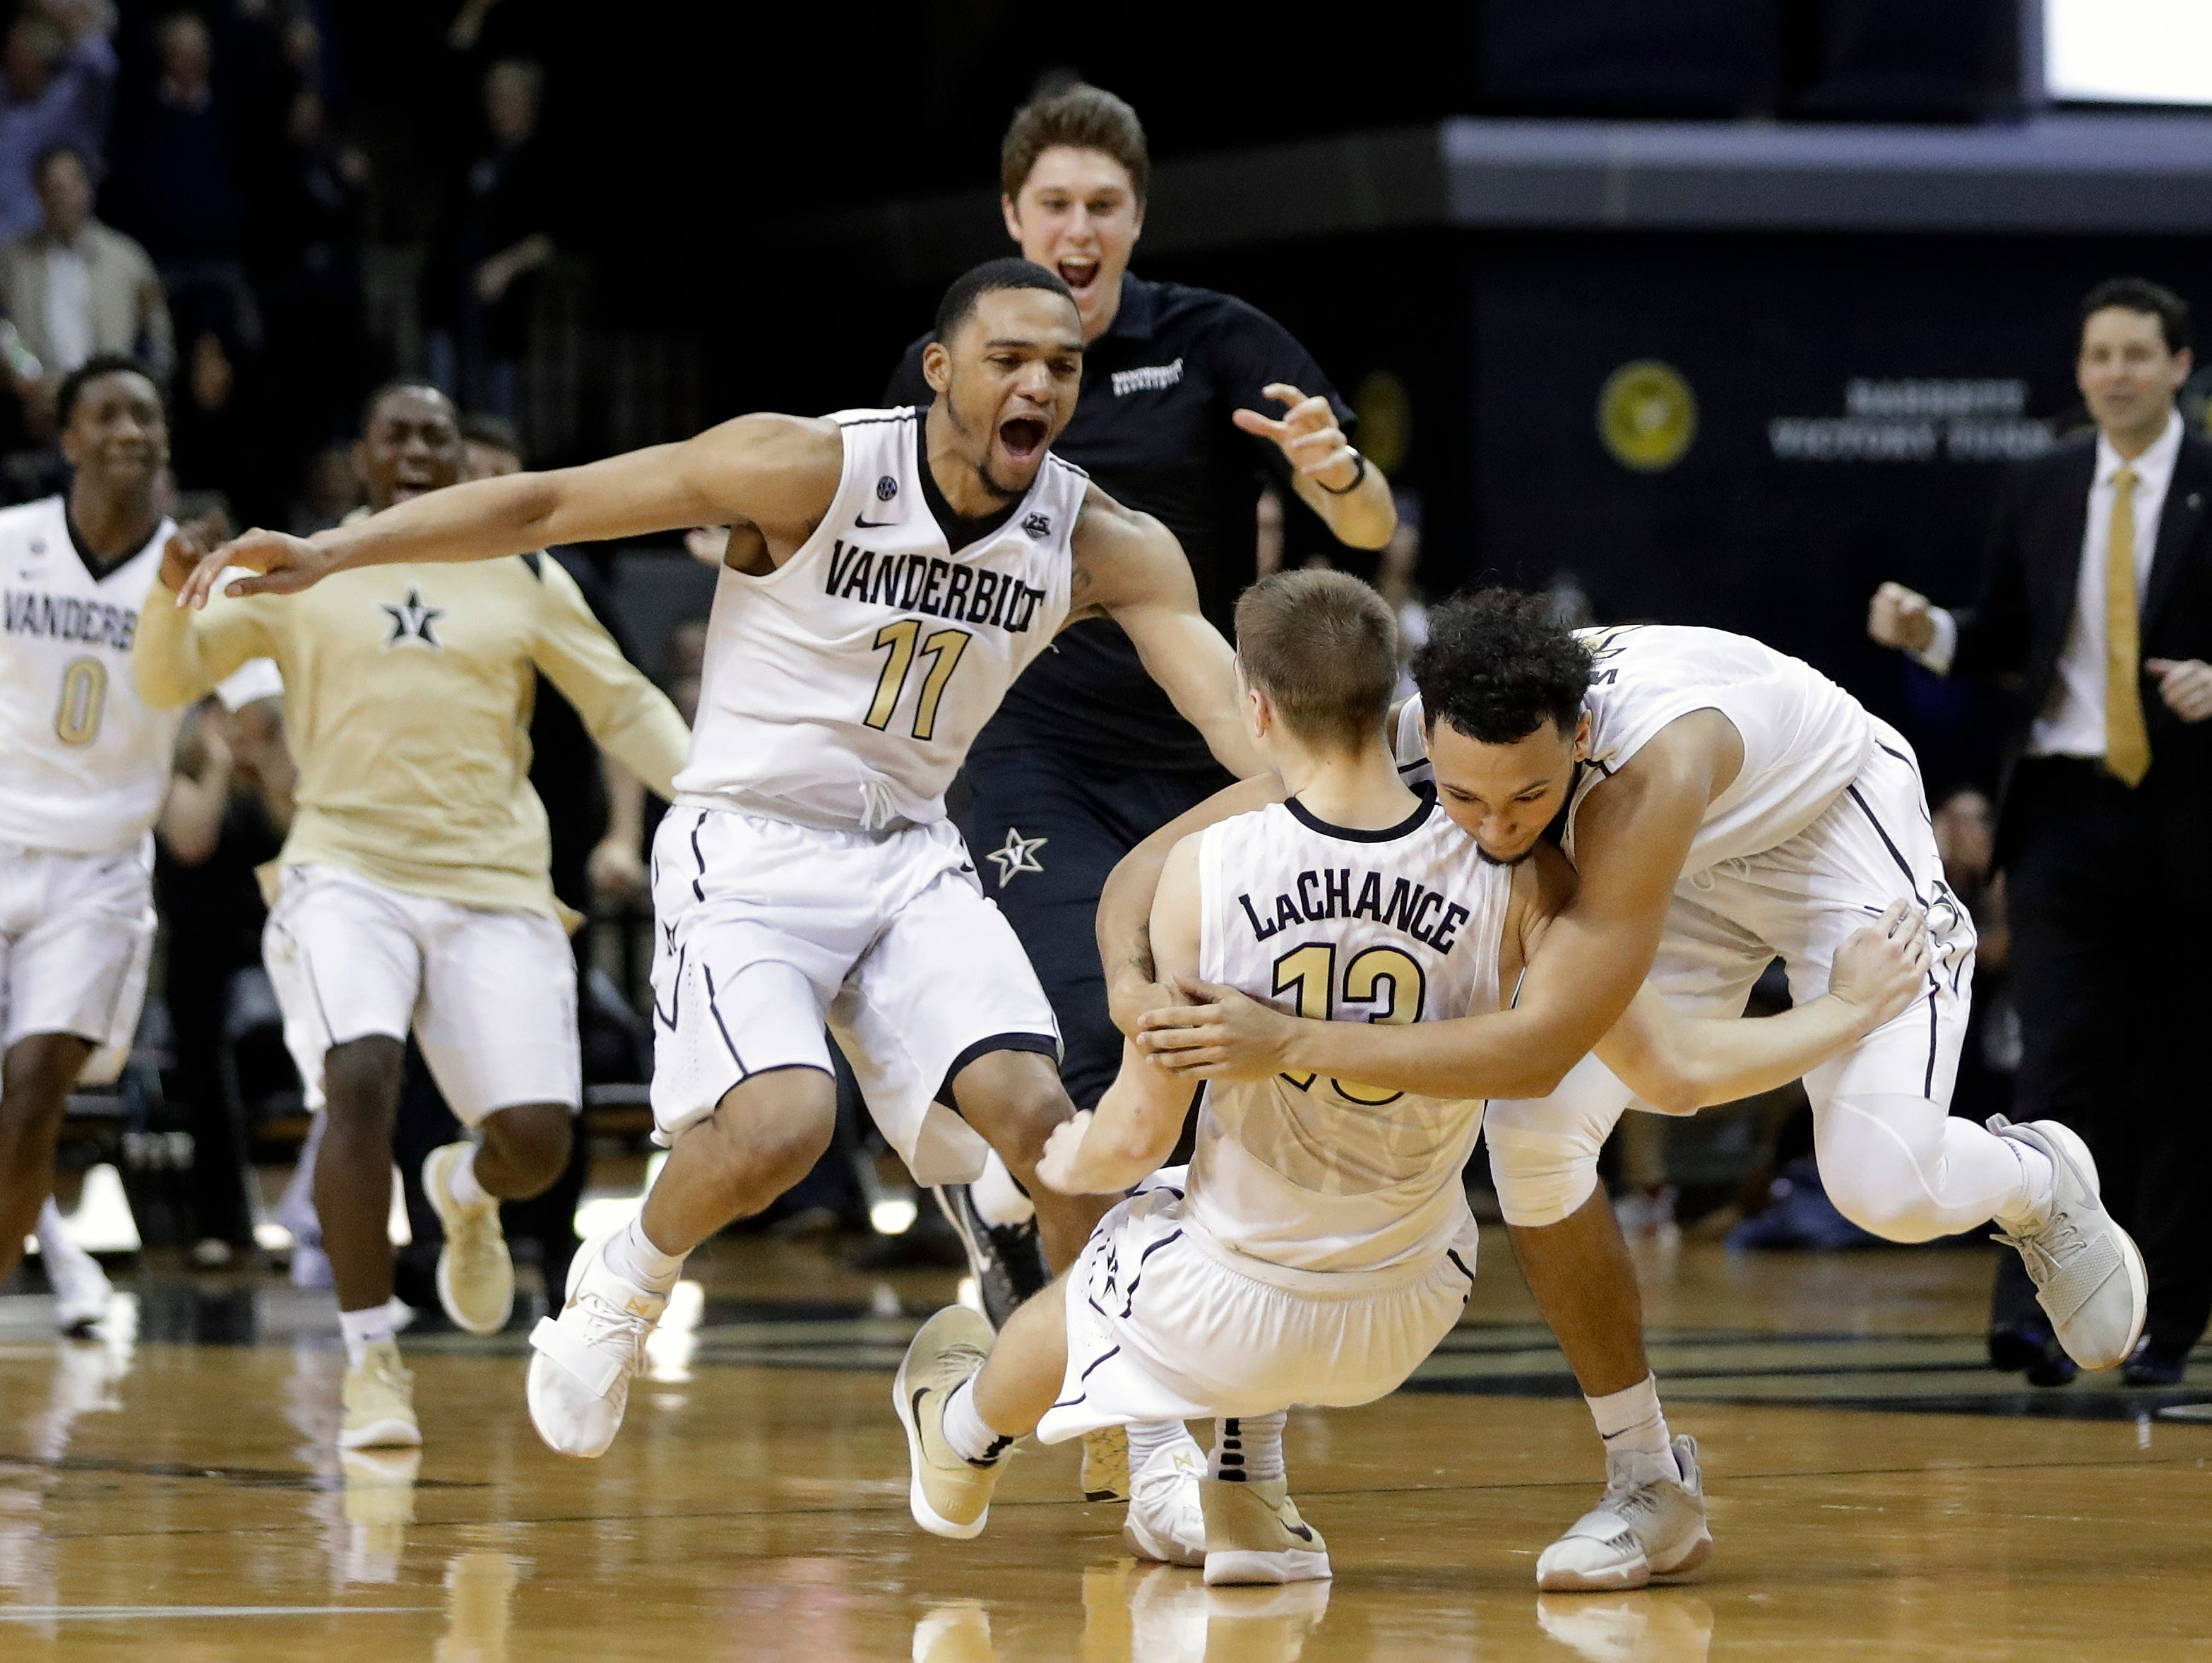 Vanderbilt guard Riley LaChance (13) is mobbed by teammates Jeff Roberson (11) and Payton Willis, right, after LaChance hit the winning 3-point basket against Mississippi State in the final second on Feb. 14, 2018, in Nashville, Tenn. Vanderbilt won 81-80.